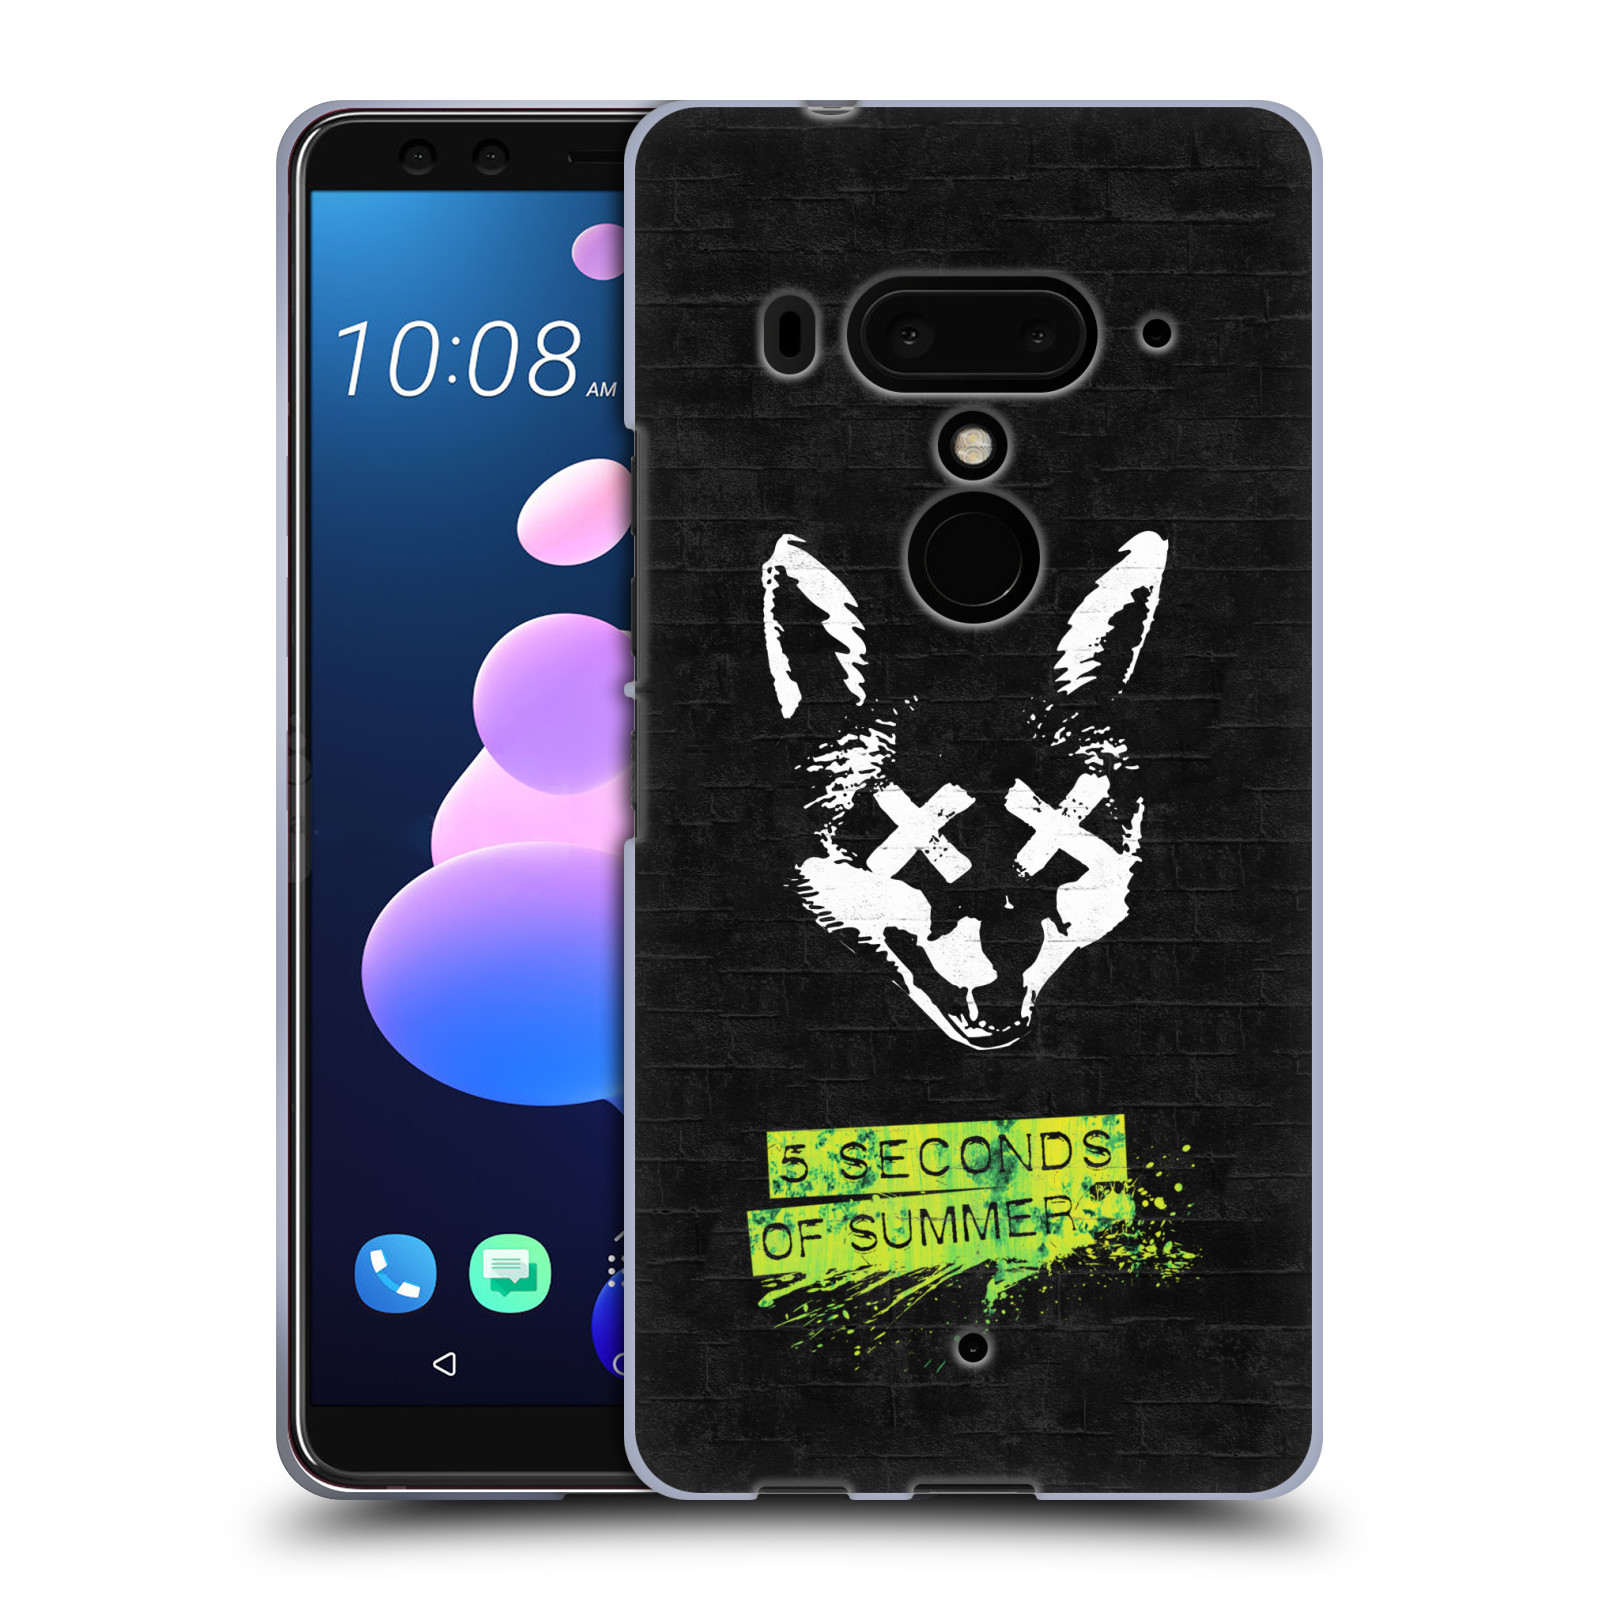 Silikonové pouzdro na mobil HTC U12 Plus - Head Case - 5 Seconds of Summer - Fox